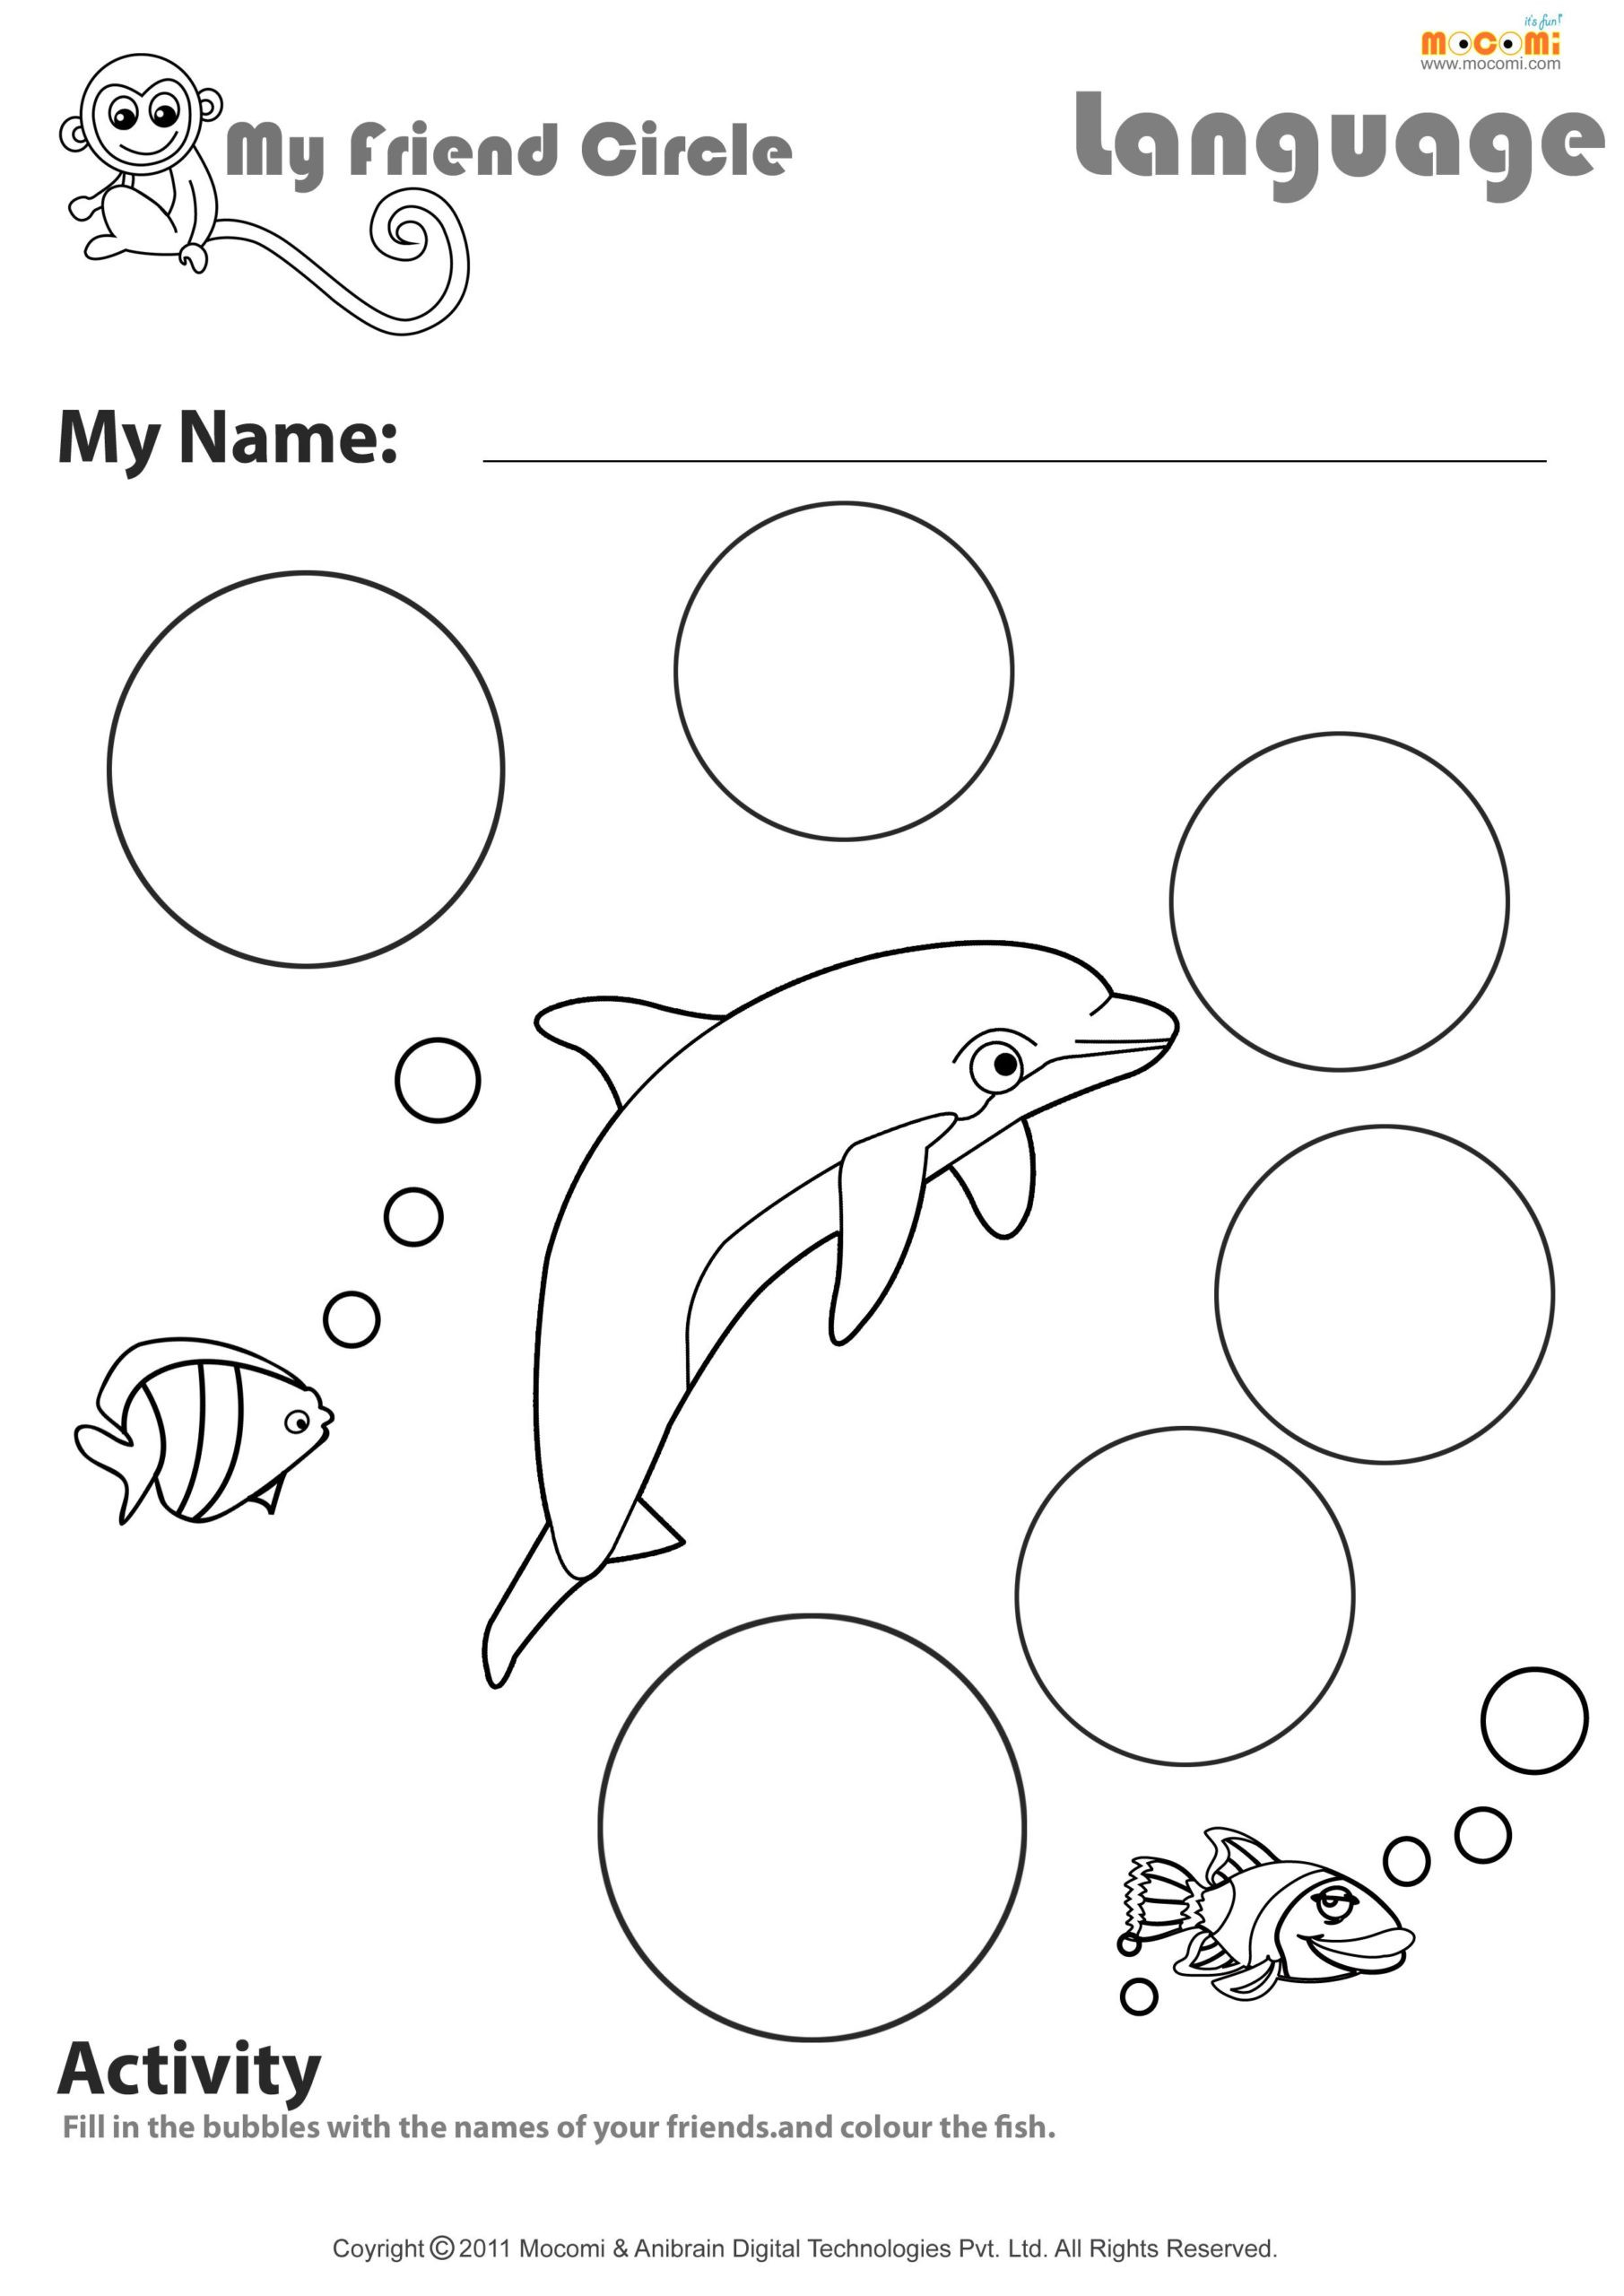 Theme Worksheets 2nd Grade My Friend Circle English Worksheet for Kids Worksheets